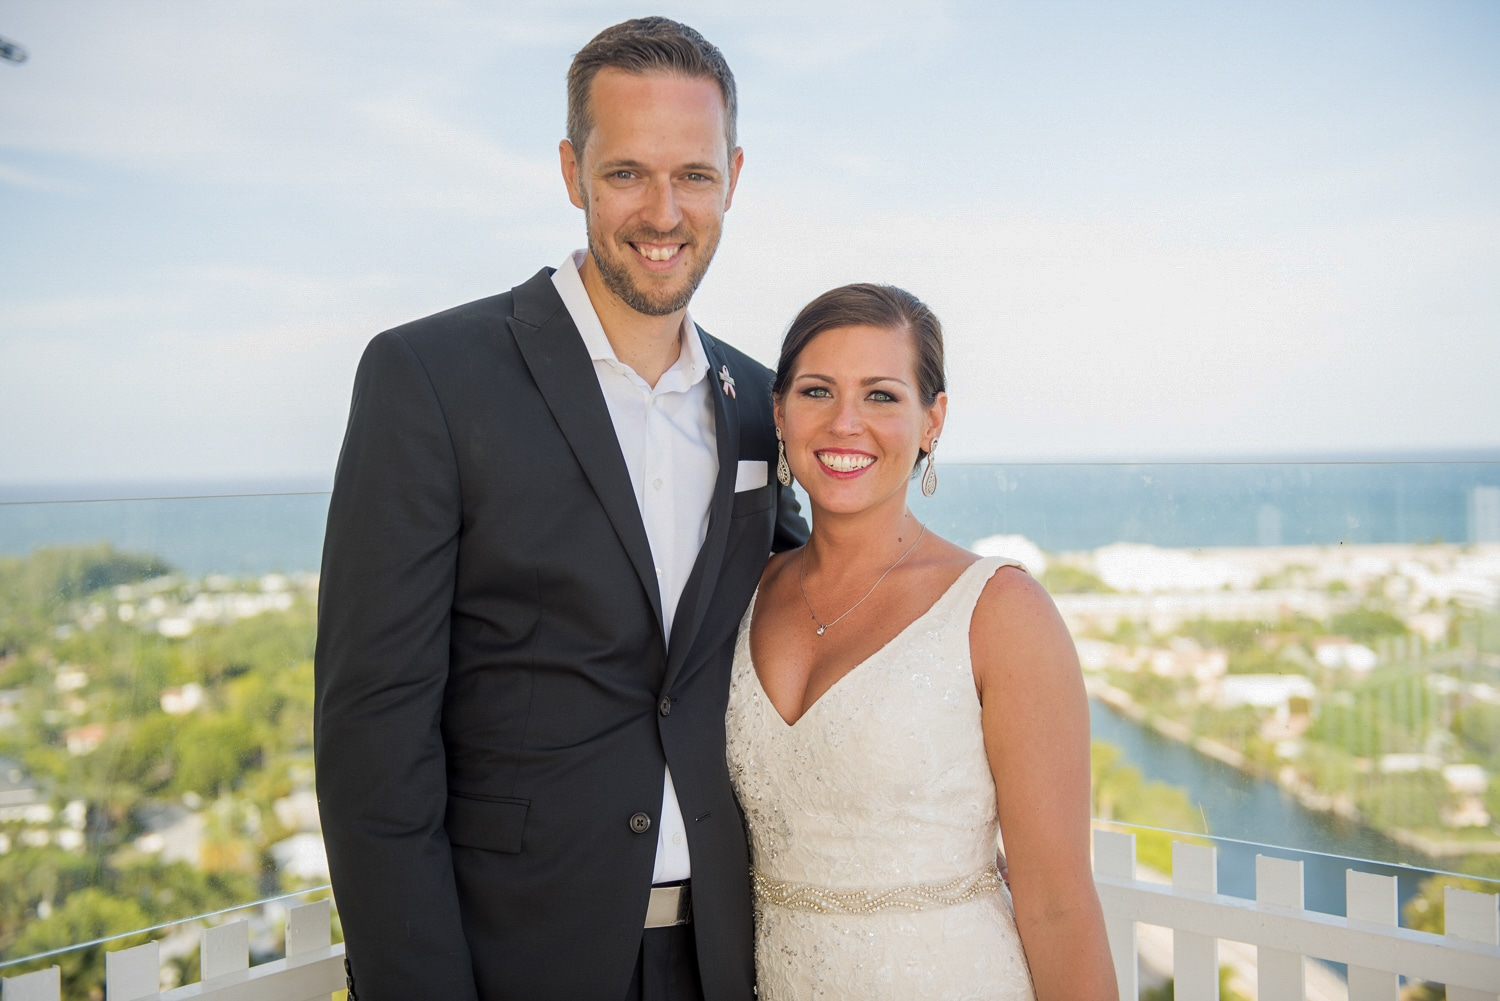 Bride and Groom on balcony with ocean view